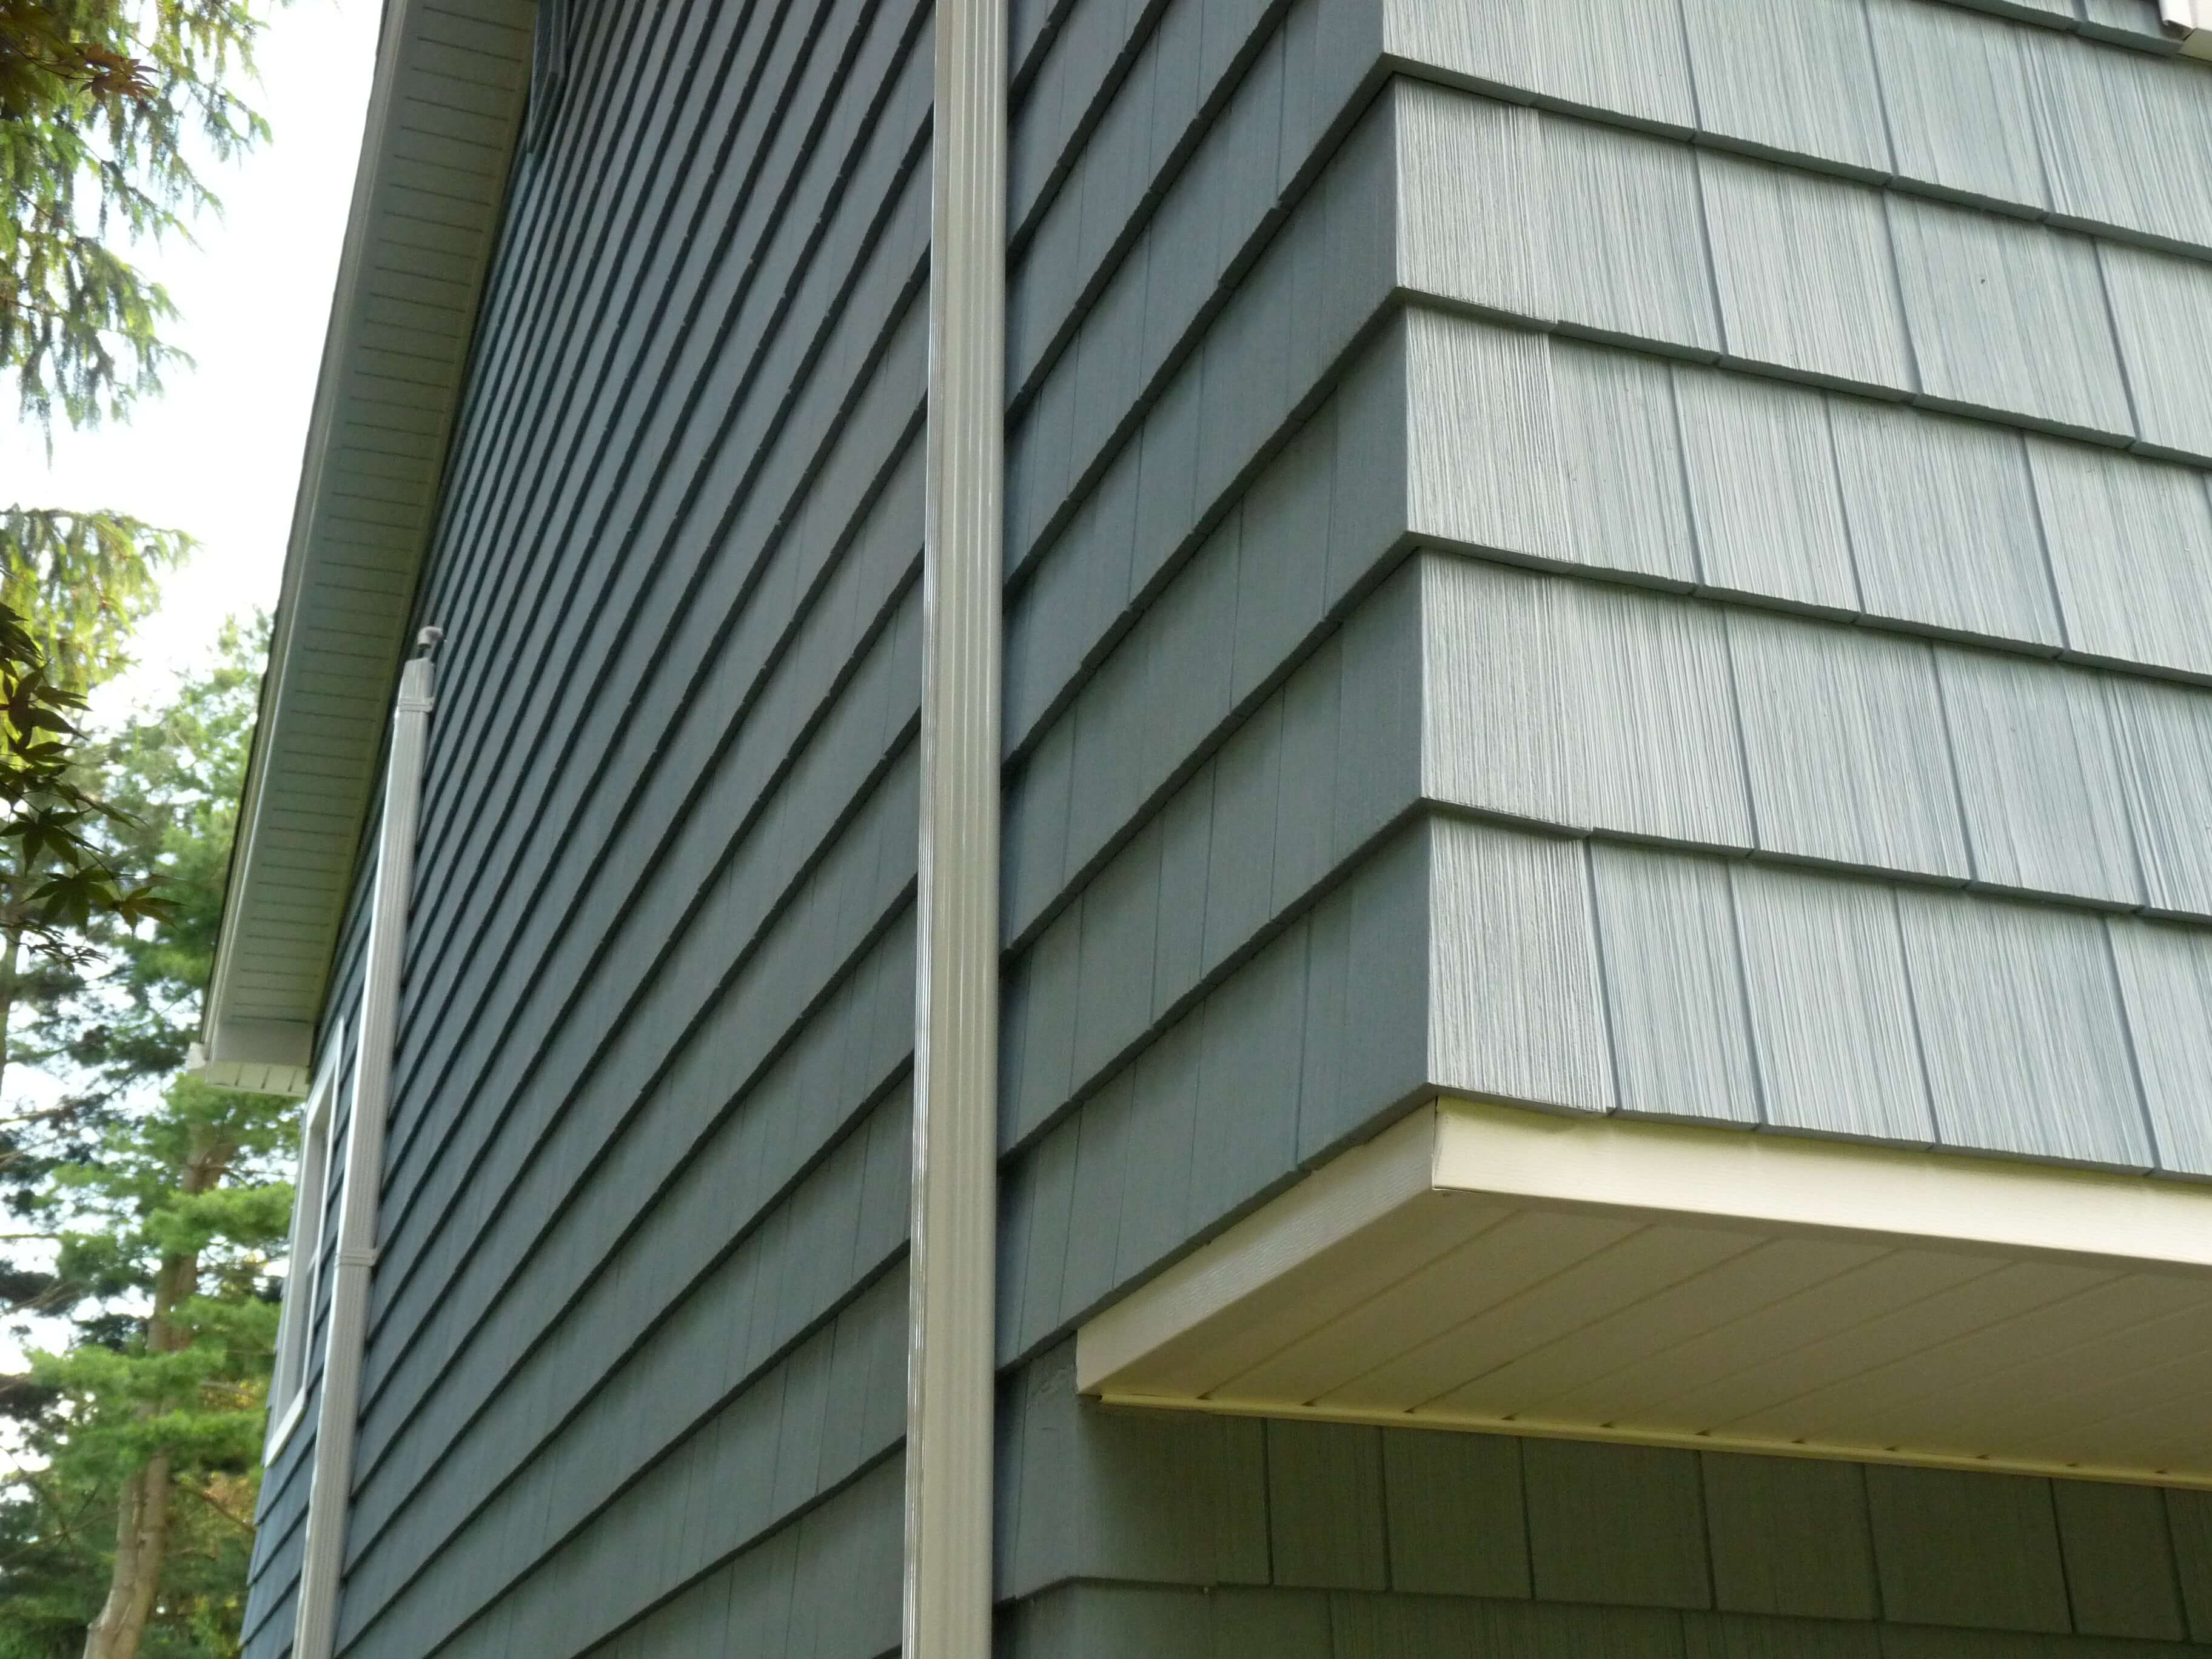 Morris county nj alside siding project with shake corners for Lp shake siding